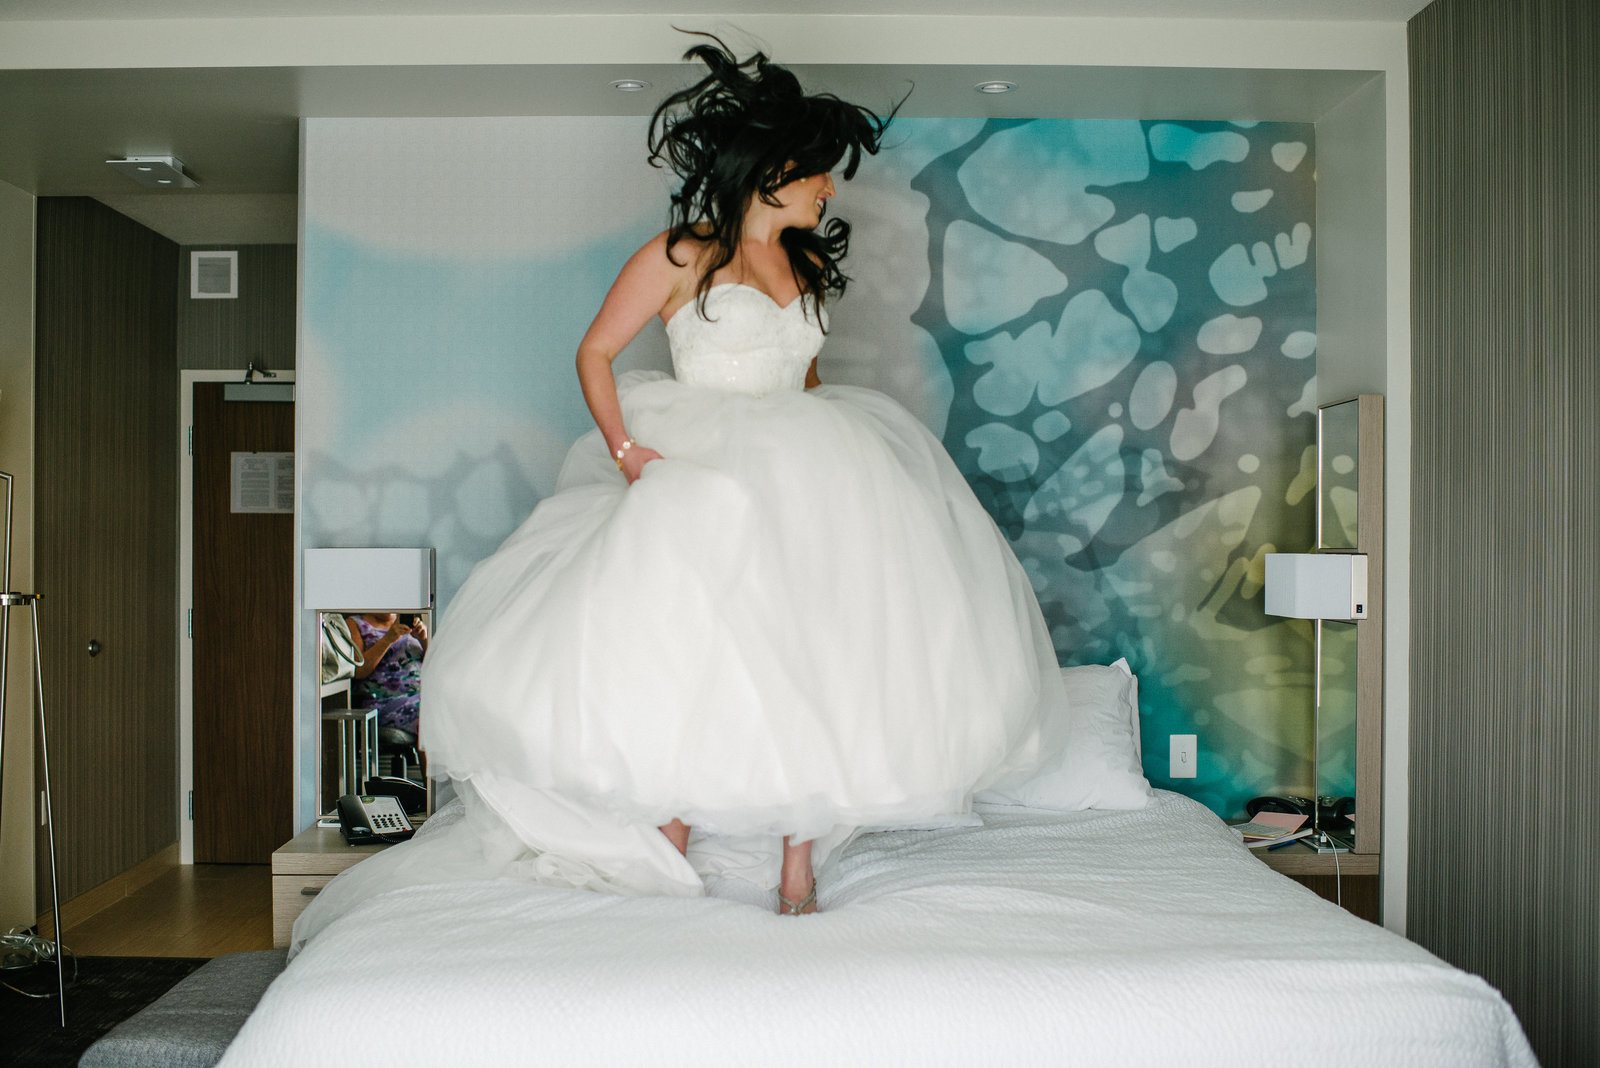 Youngstown OH bride jumping on bed in hotel room in her wedding dress